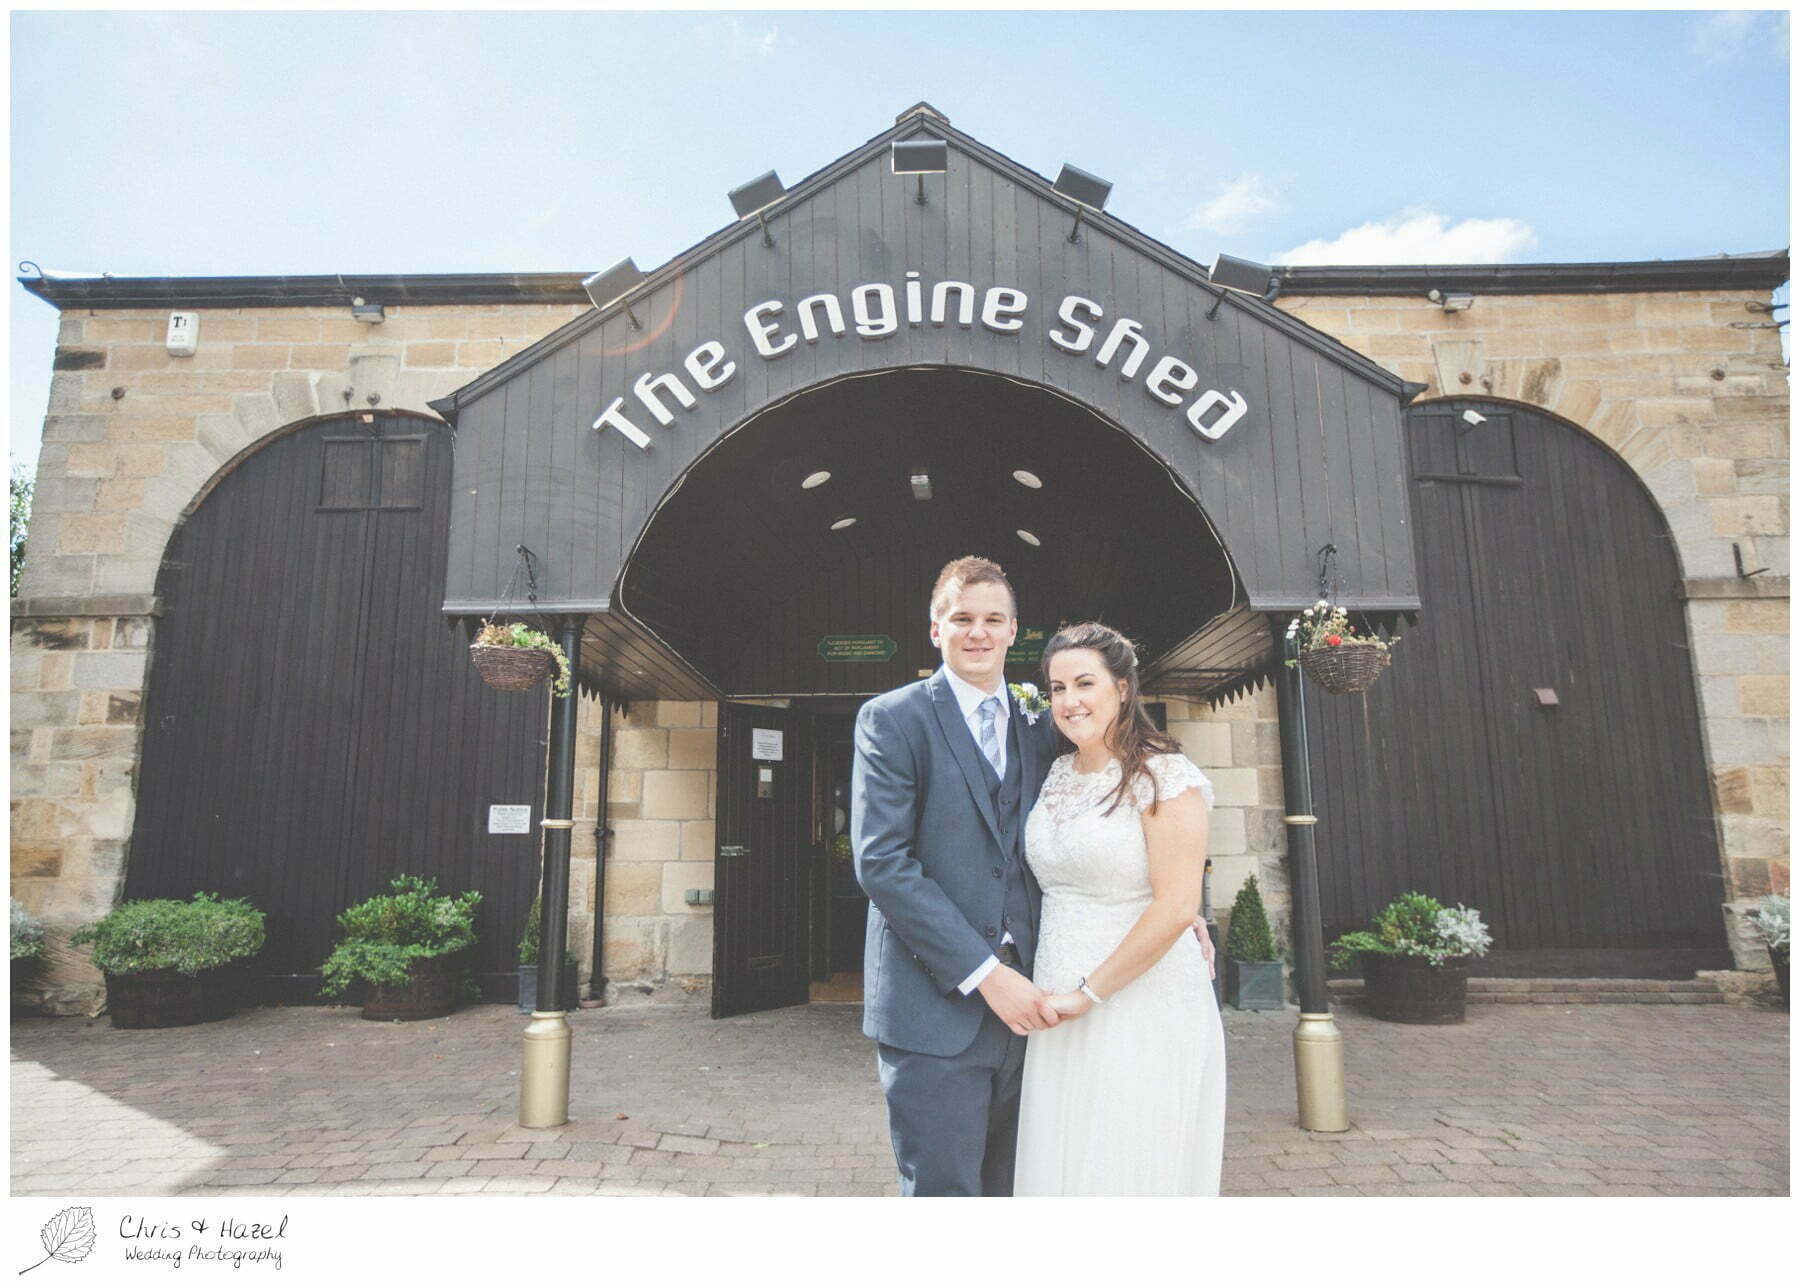 bride and groom outside the engine shed, Bride and groom portraits, bride and groom photographs, wedding, south milford Wedding Photographer, the engine shed, wetherby wedding venue, Wedding Photography wetherby, Chris and Hazel Wedding Photography, stevie pollard, stevie standerline, paul standerline,